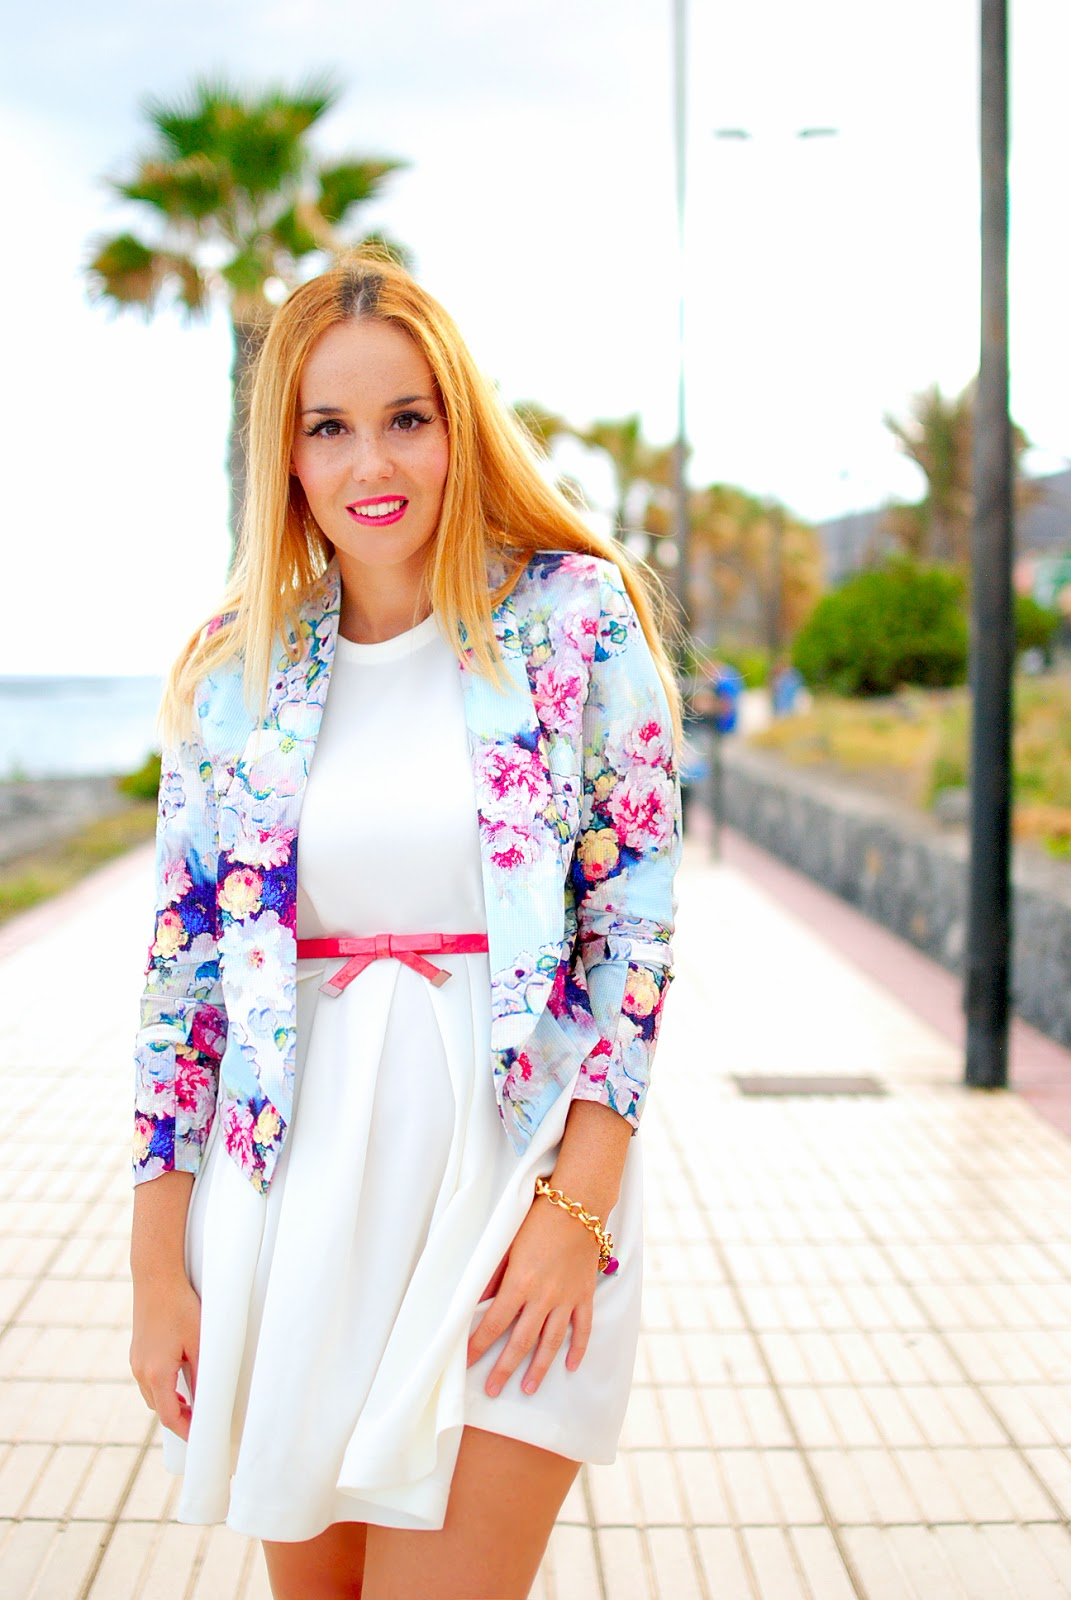 Nery hdez, mart of china, lovelywholesale, blazer , floral print, estampado flores